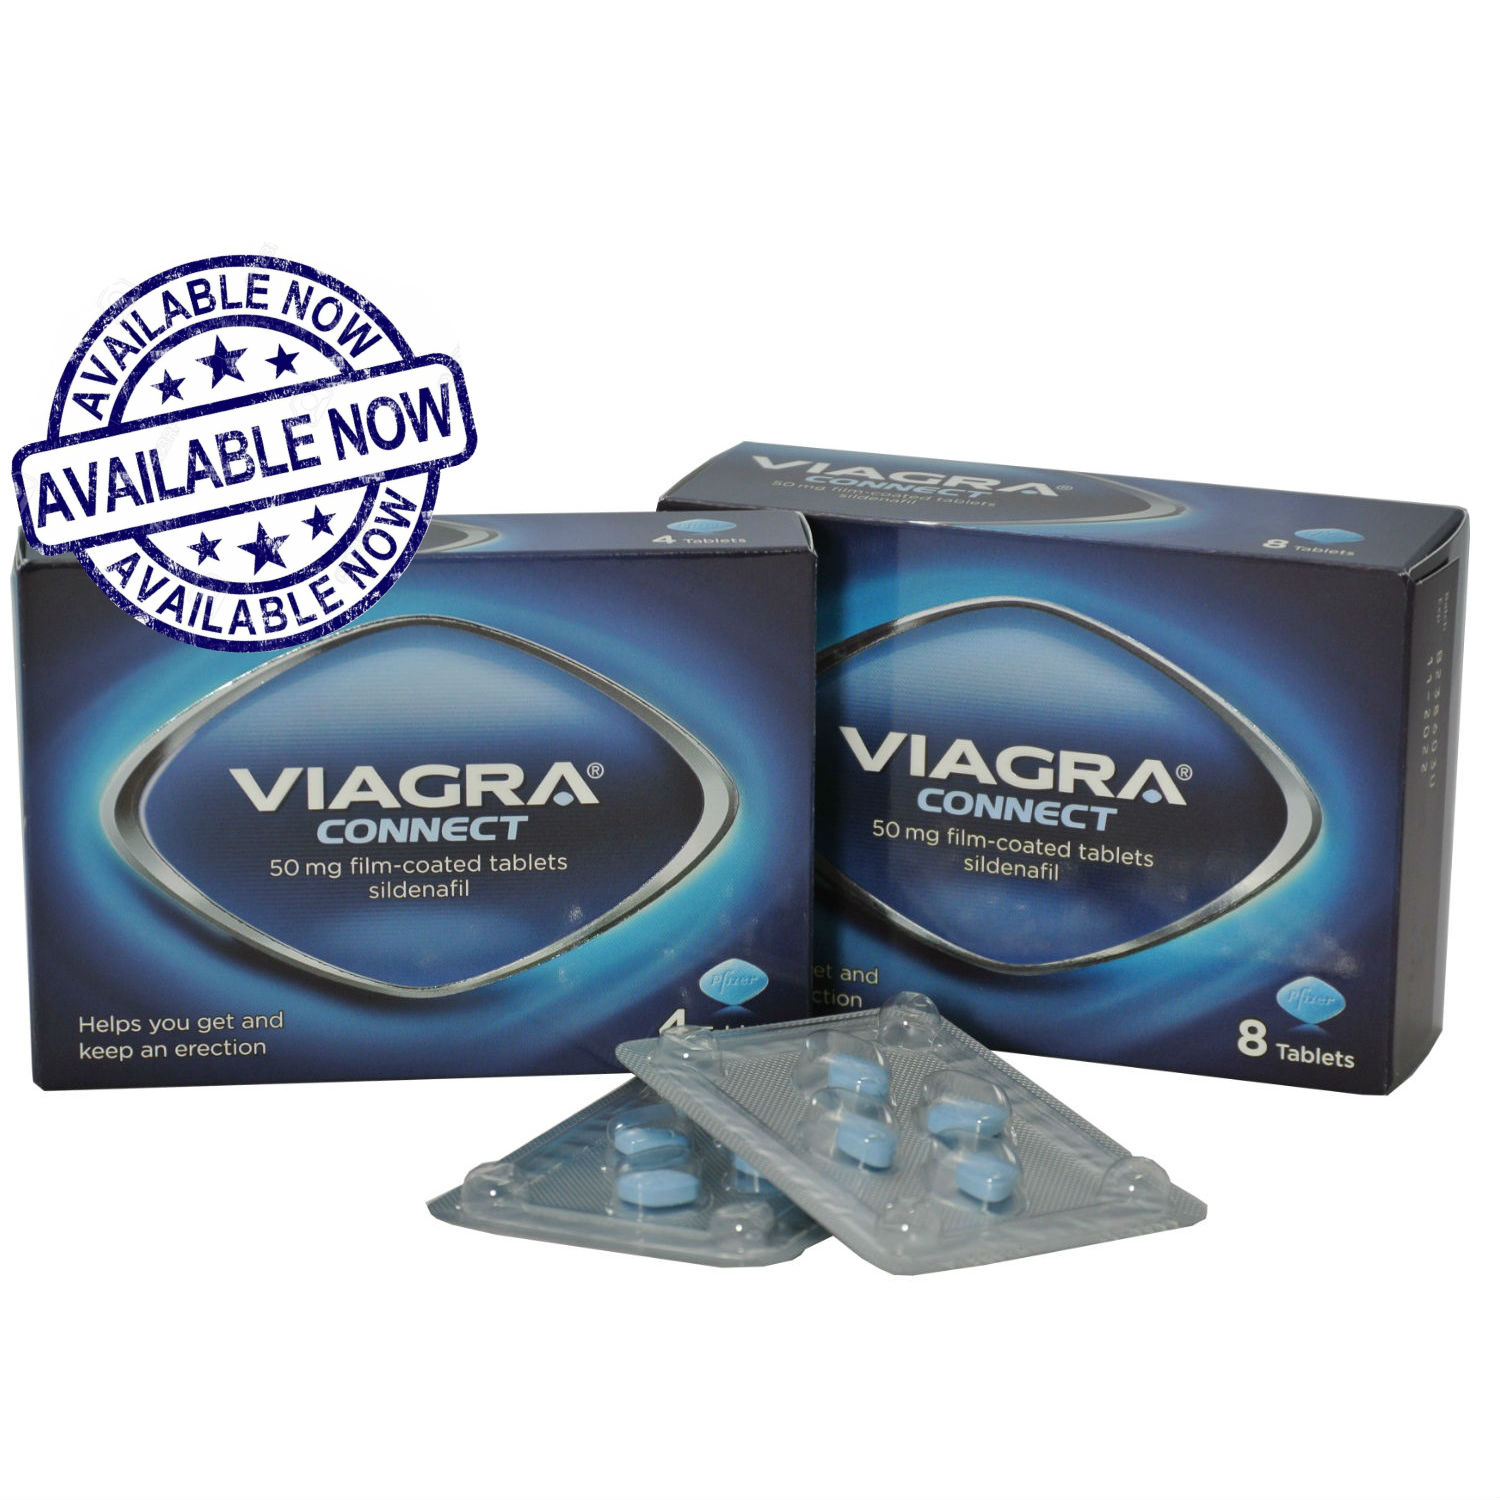 Erectile Dysfunction (ED) Treatment